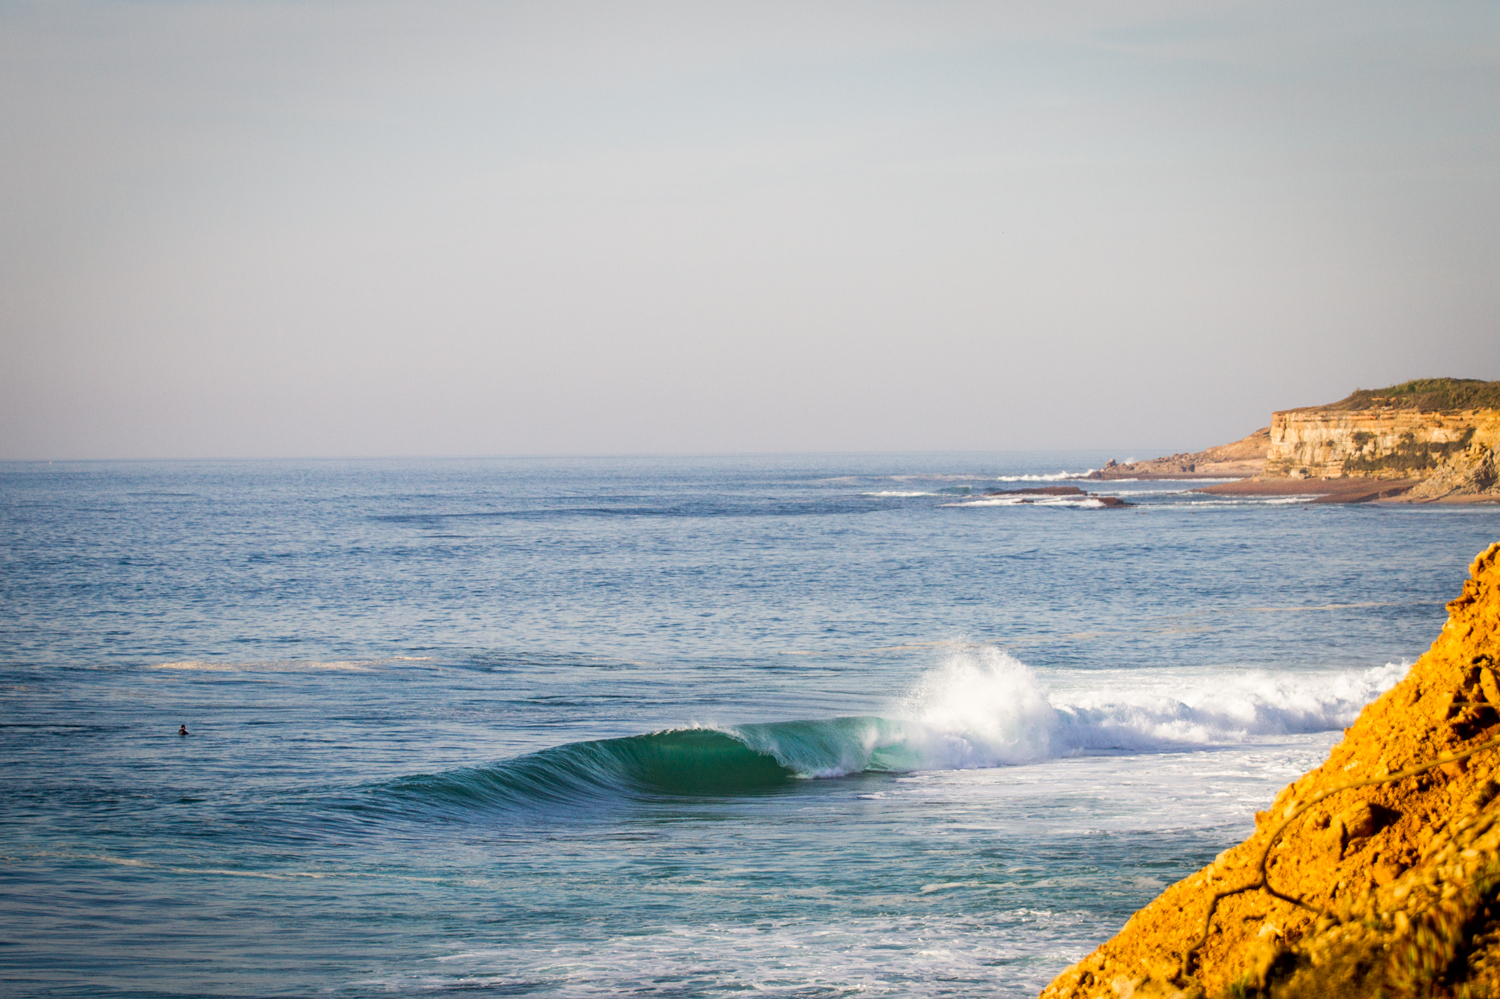 A drainer unloads unmolested in Ericeira